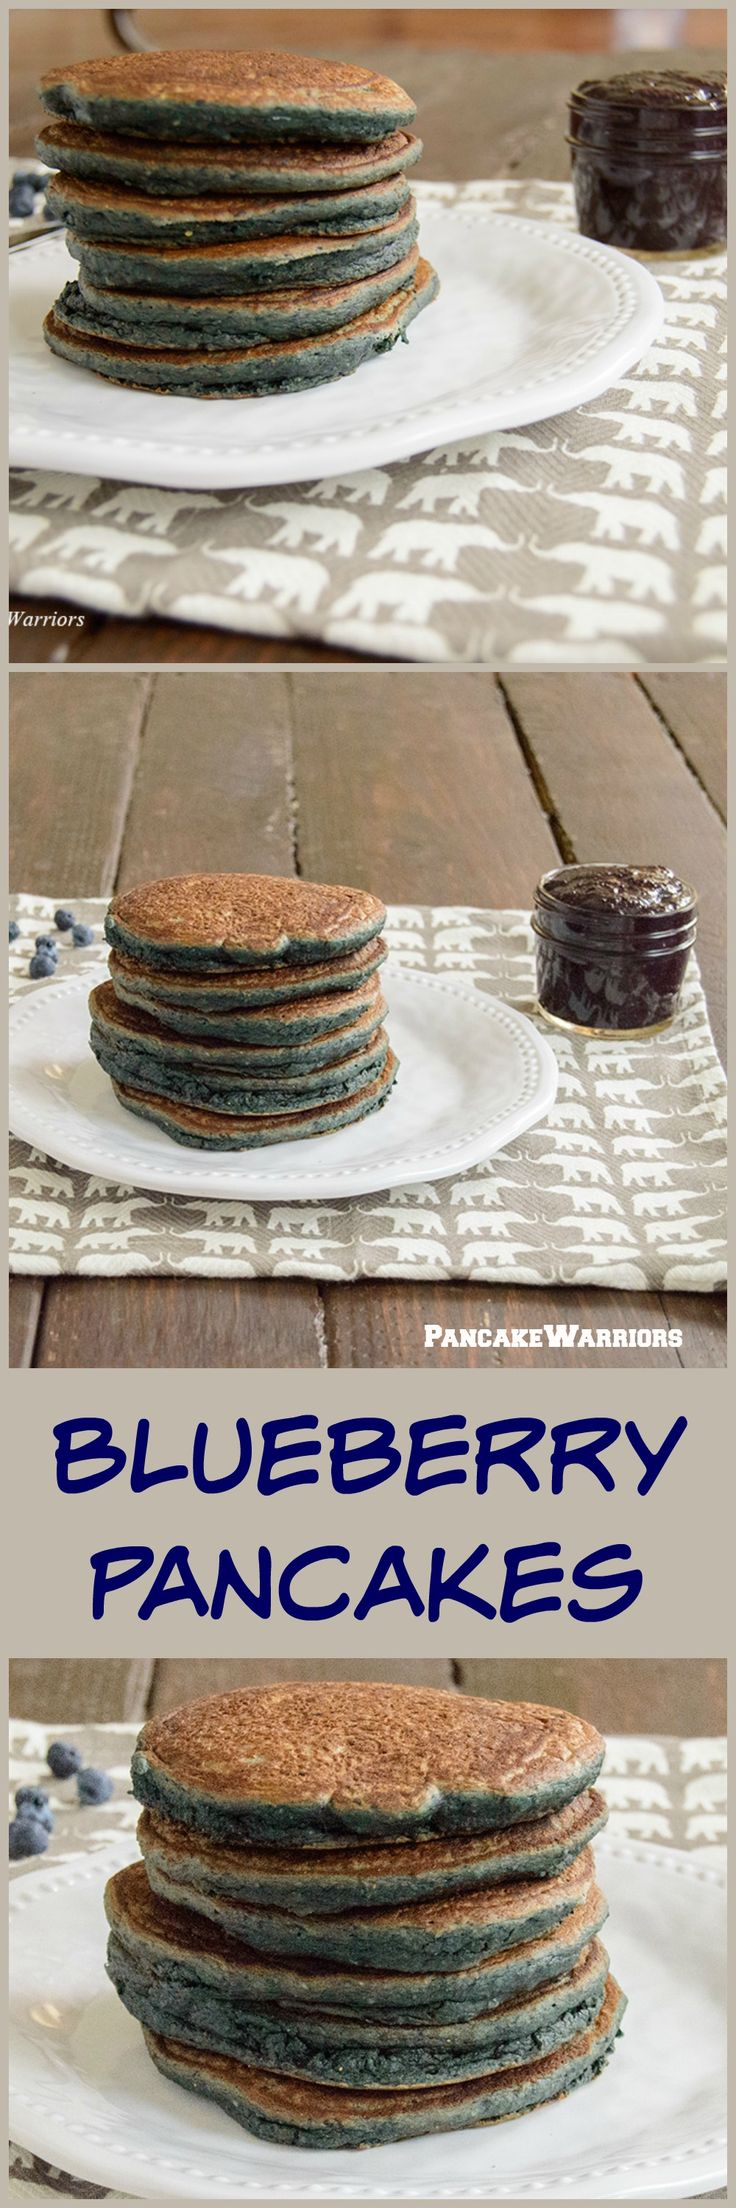 Healthy Blueberry Pancake Recipe - full of blueberries, this gluten free, low fat pancake recipe is the perfect way to start the day!